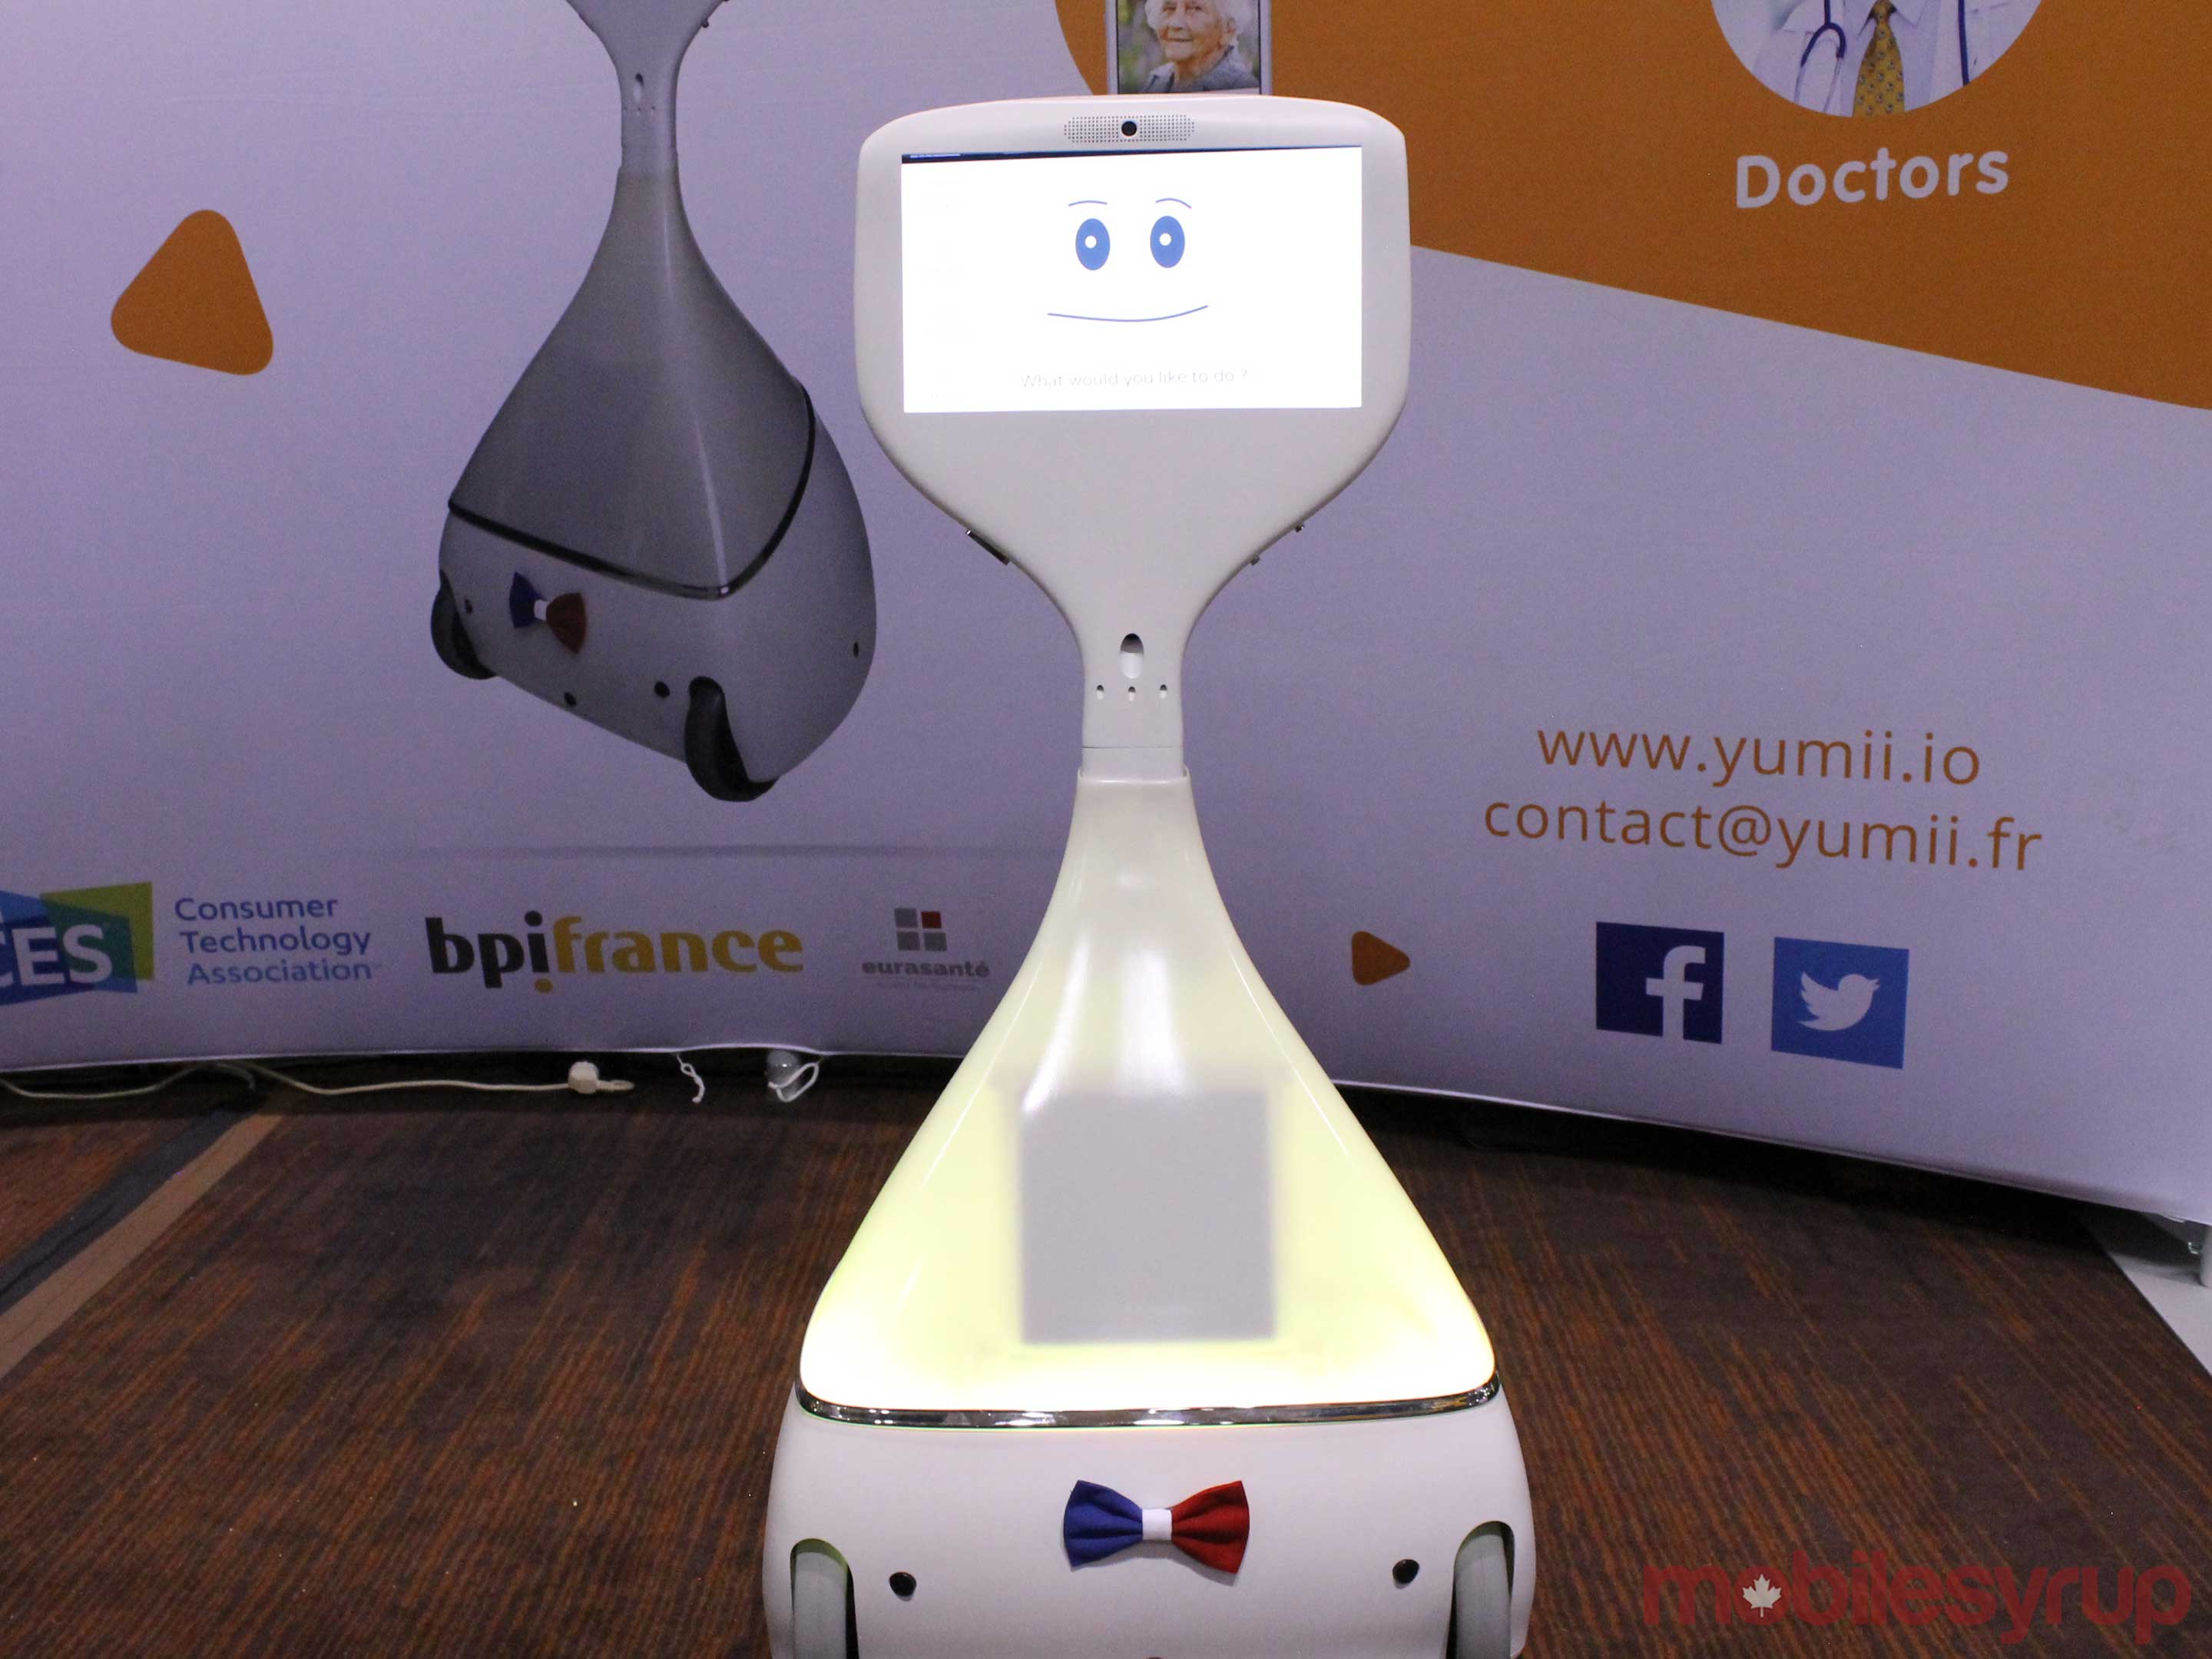 Cutii-from-Yumii-is-a-robot-that-will-take-care-of-the-elderly